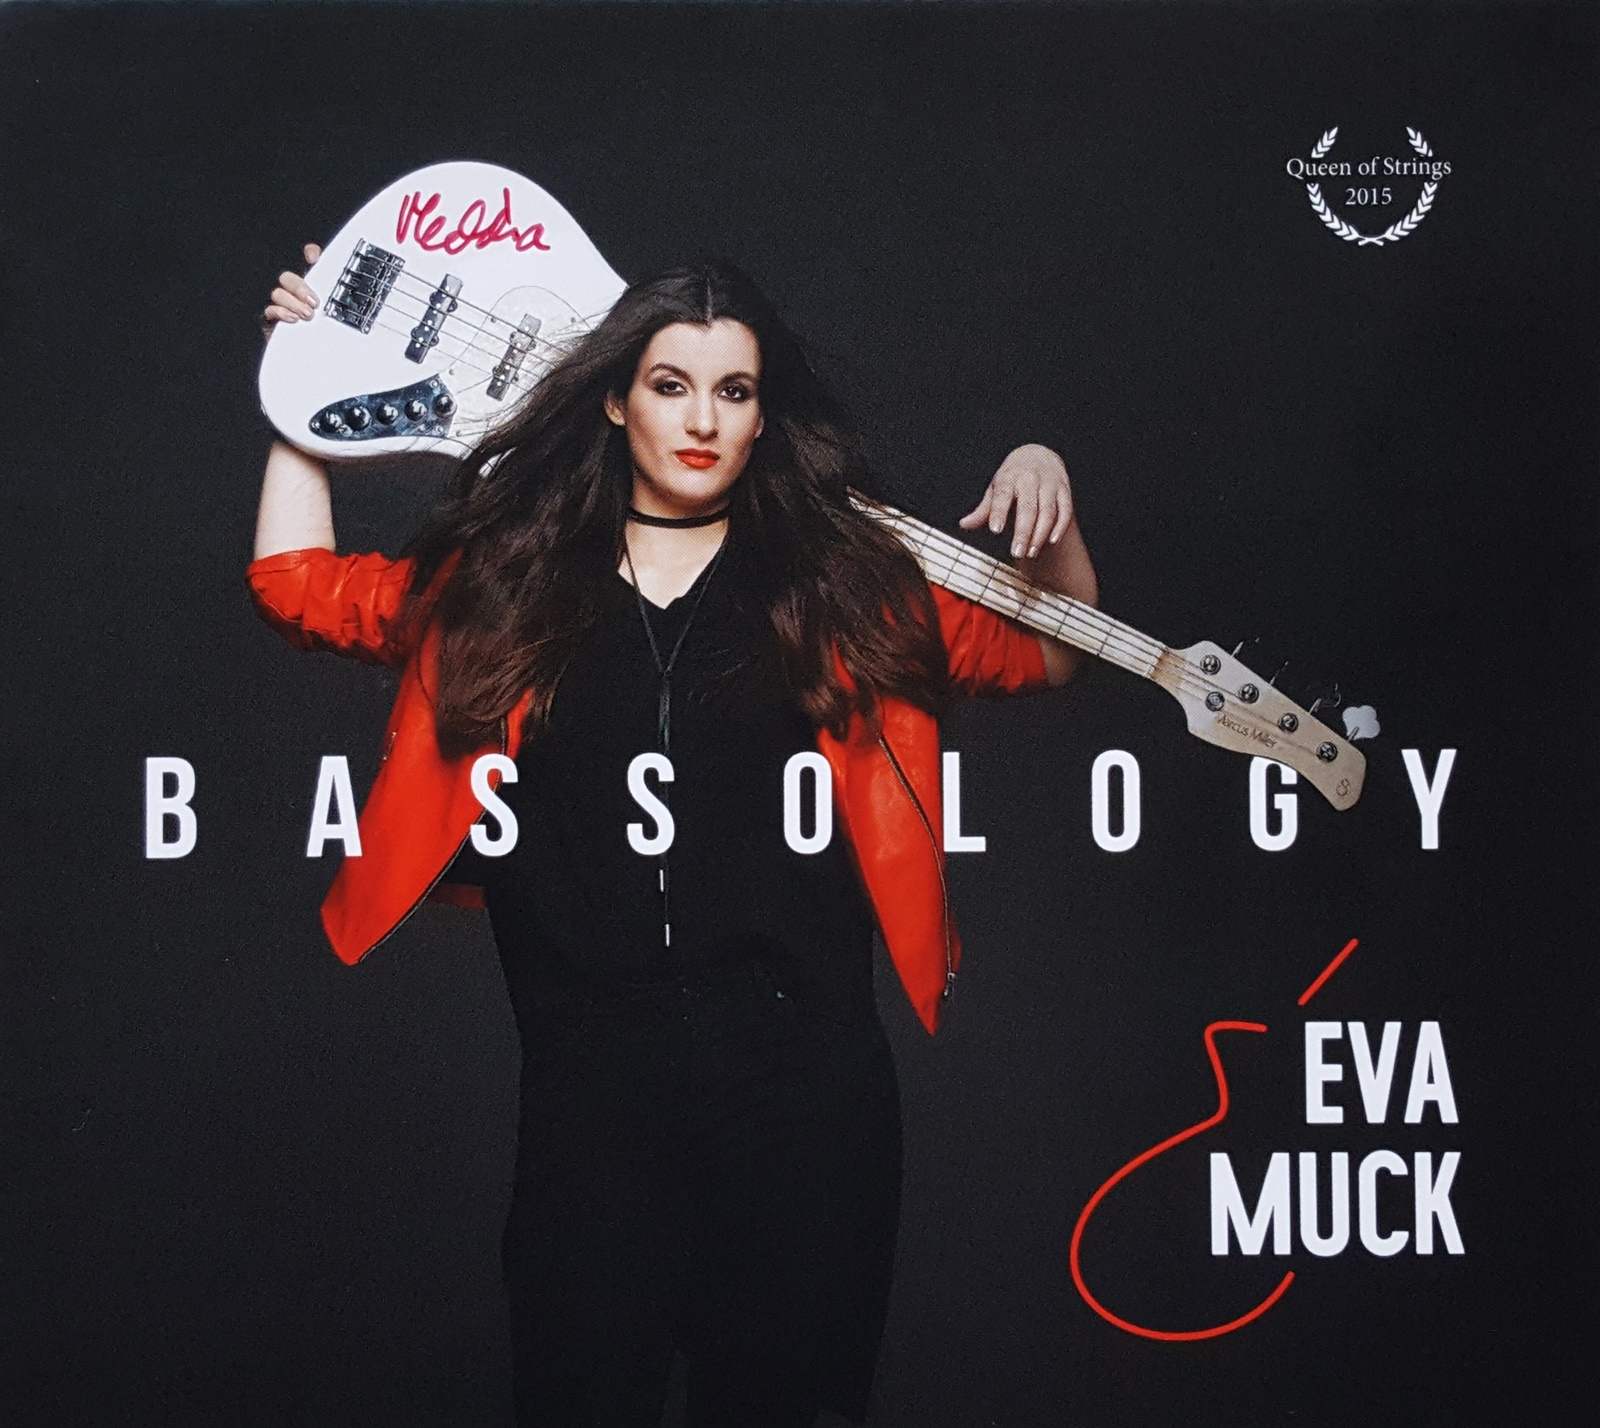 OS: Bassology - Queen of Strings